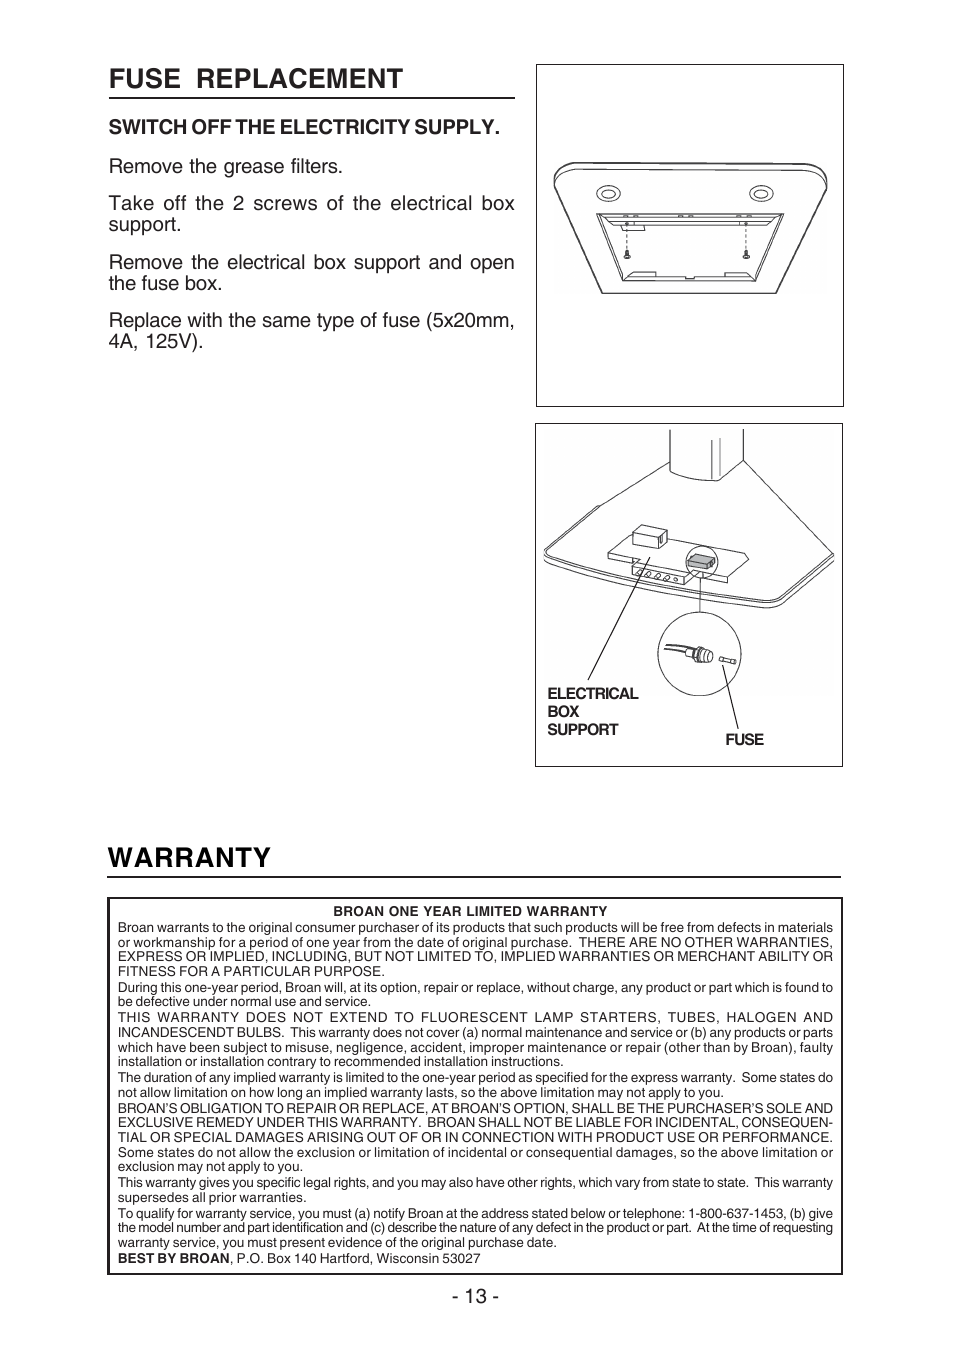 Fuse Replacement Warranty Best K3139 User Manual Page 13 40 Electric Box